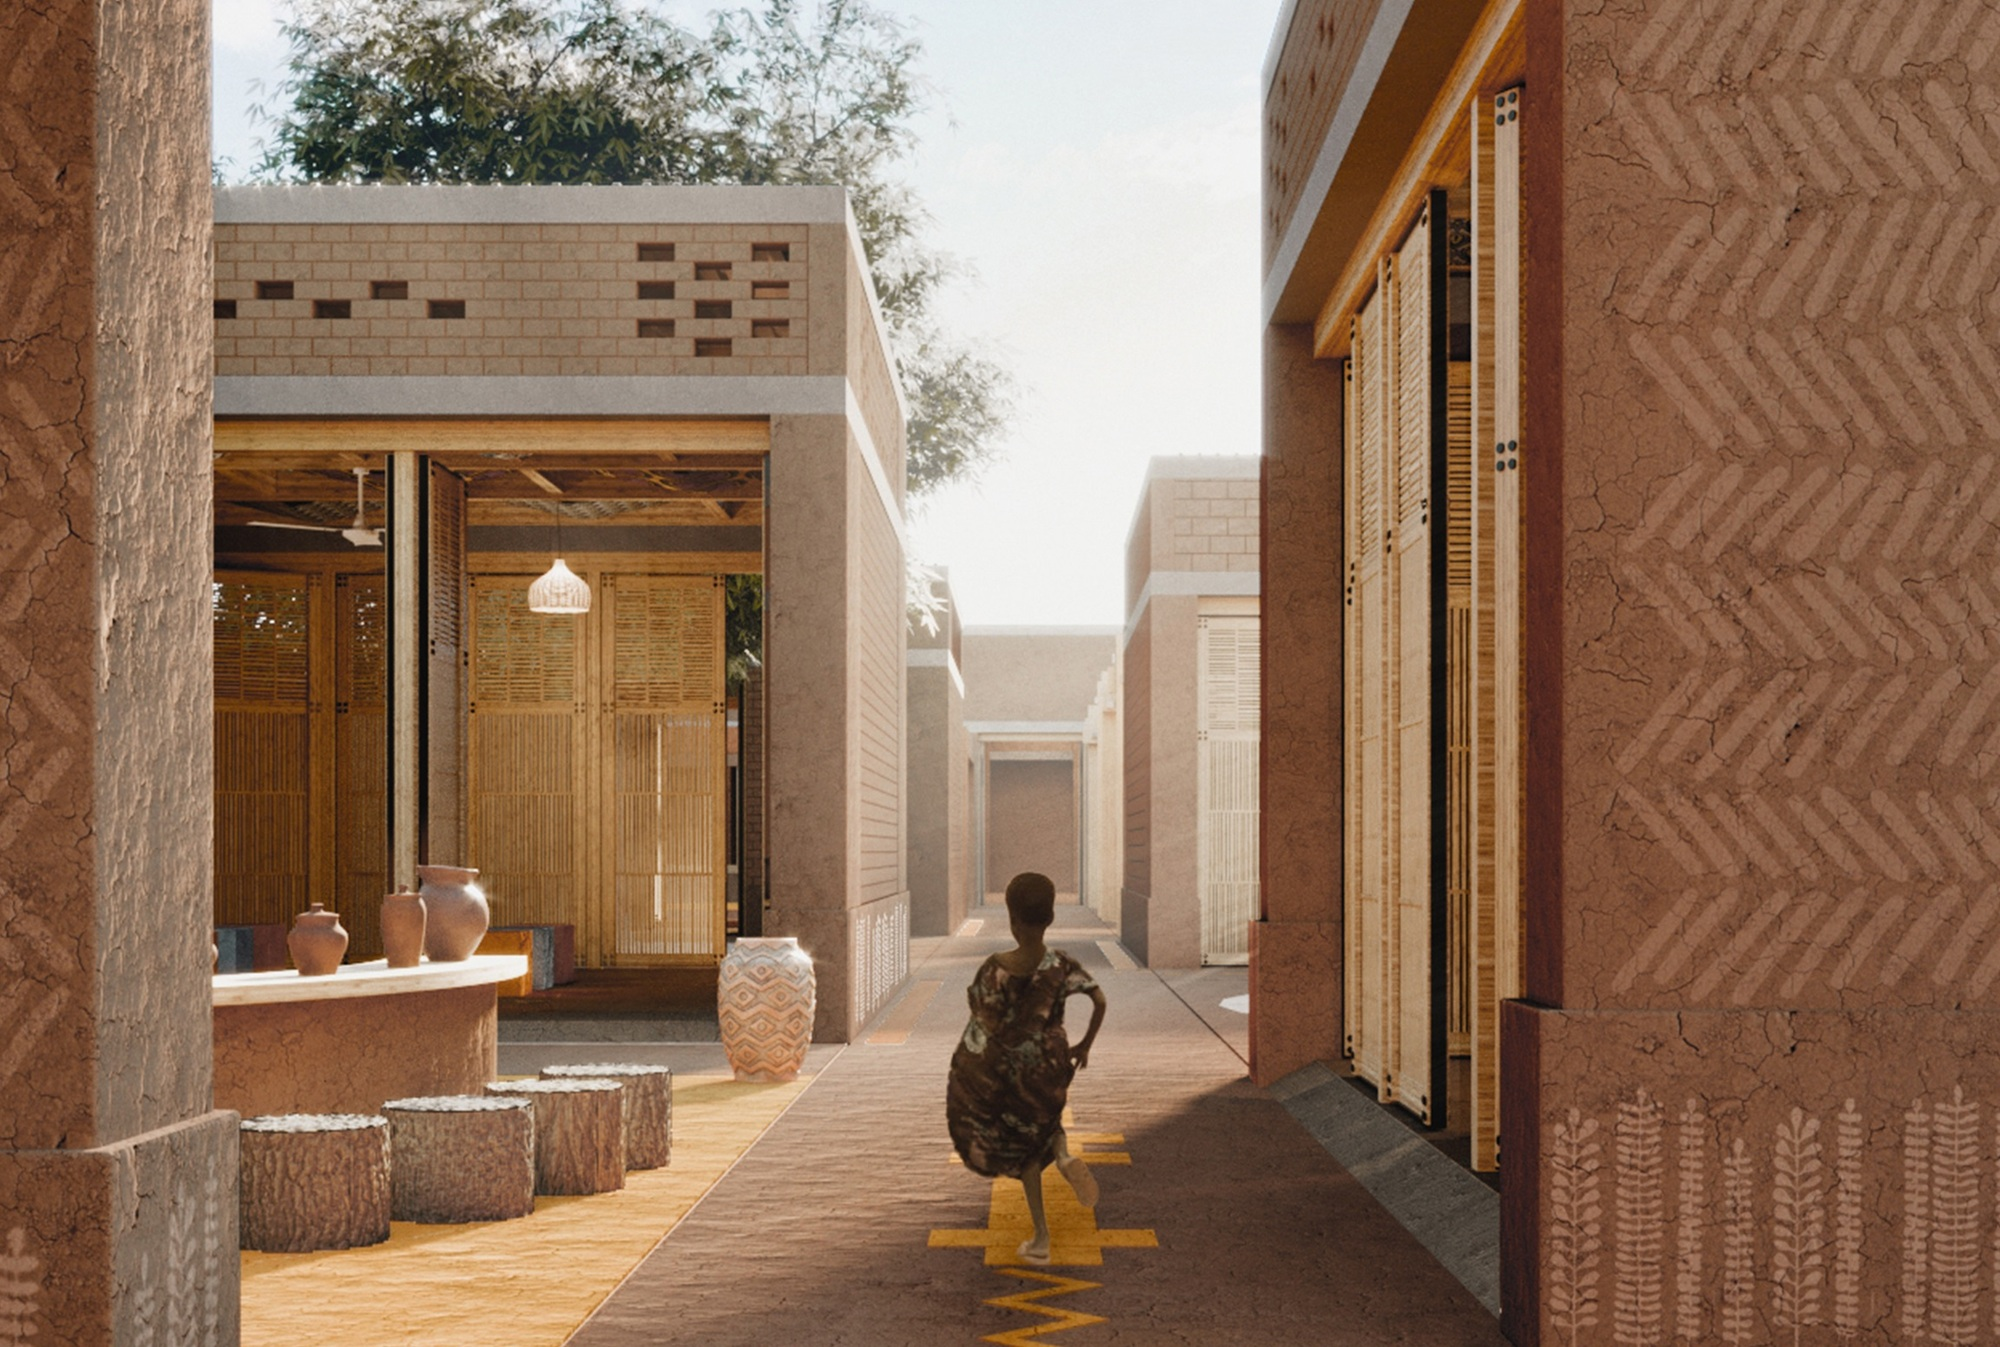 Gallery of Archstorming Announces Winning Designs for Mozambique Preschool - 1